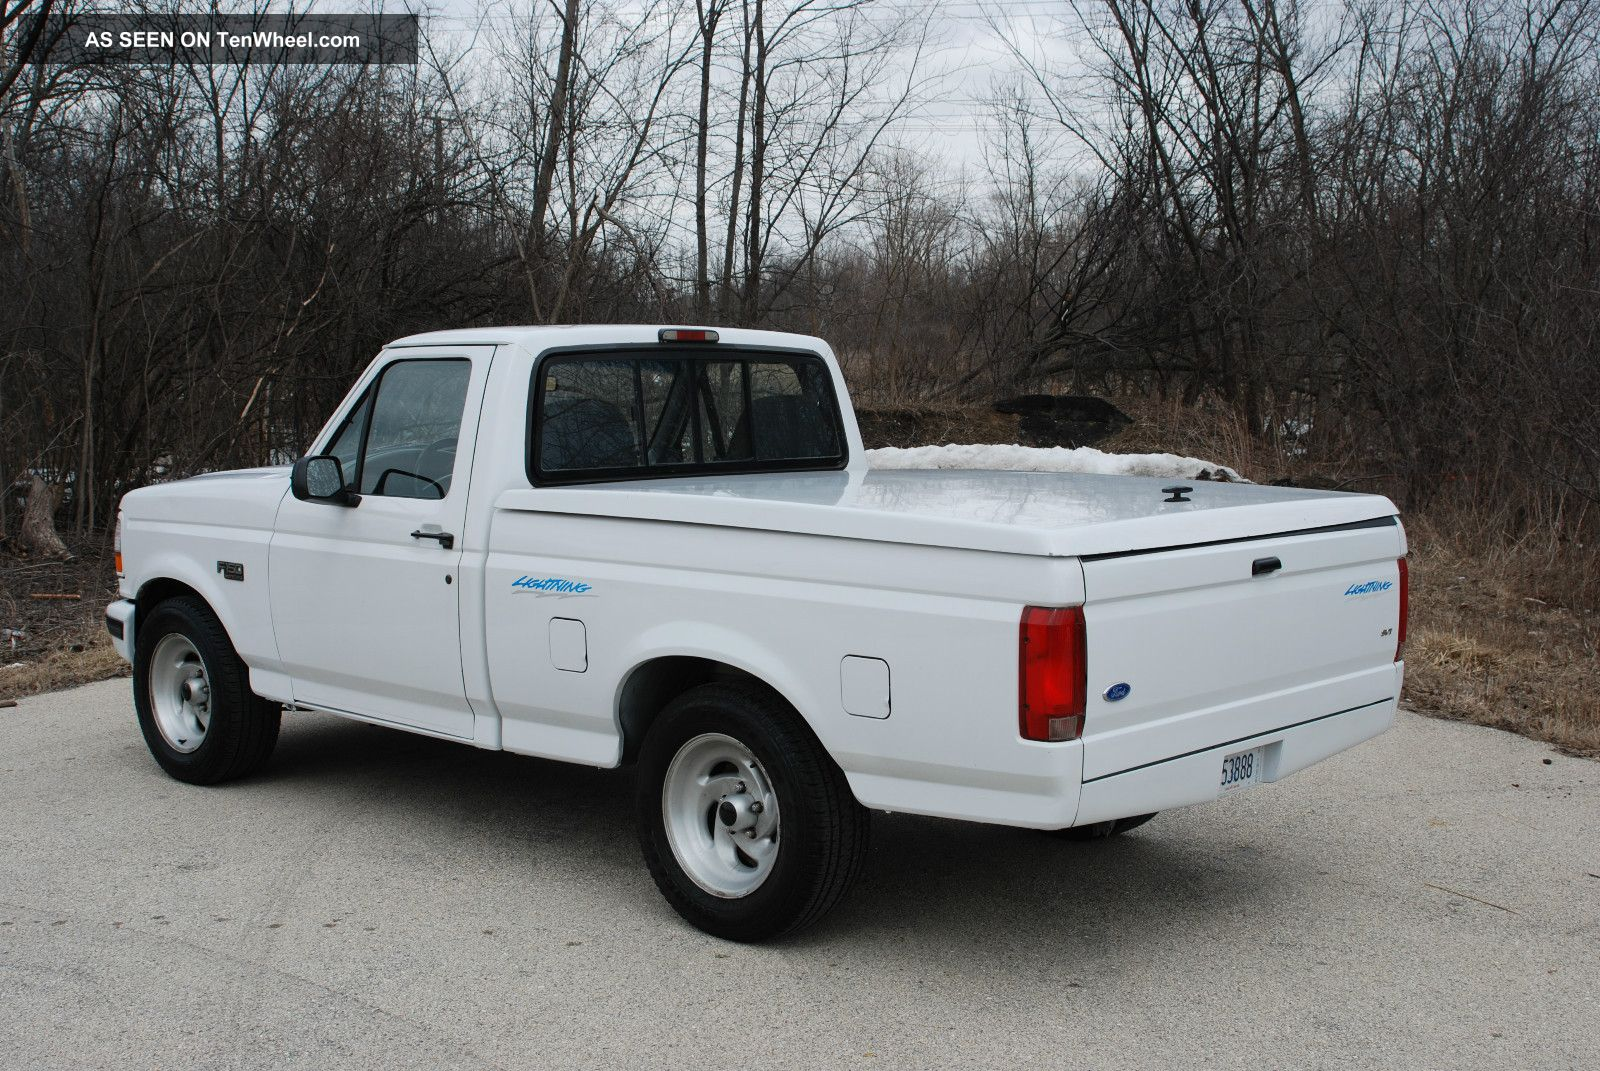 Ford f-150 1995 photo - 5